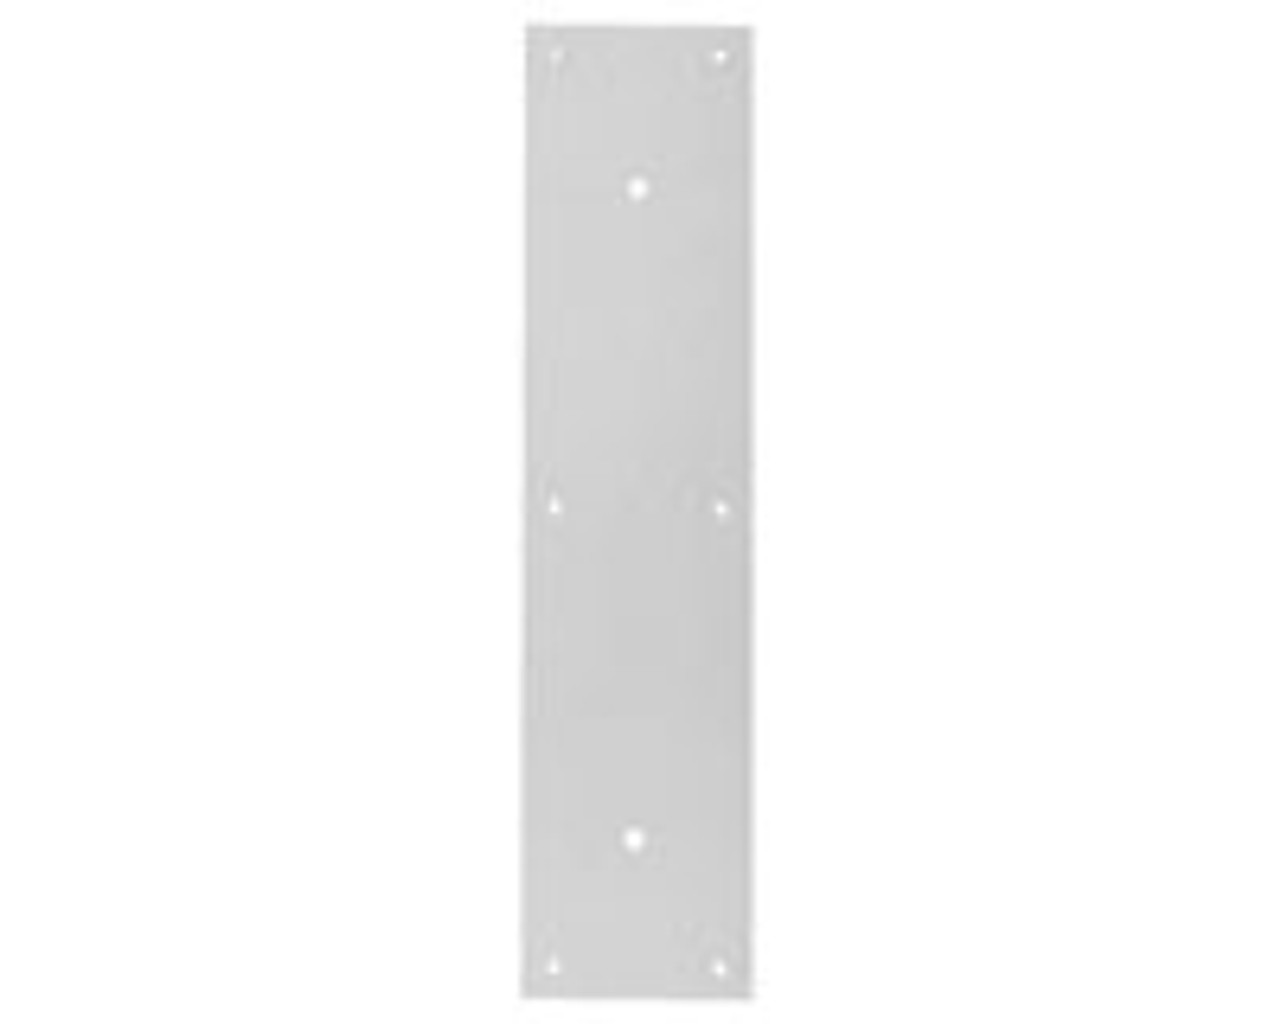 IVES-8200-US15-3.5X15 IVES Push Plate